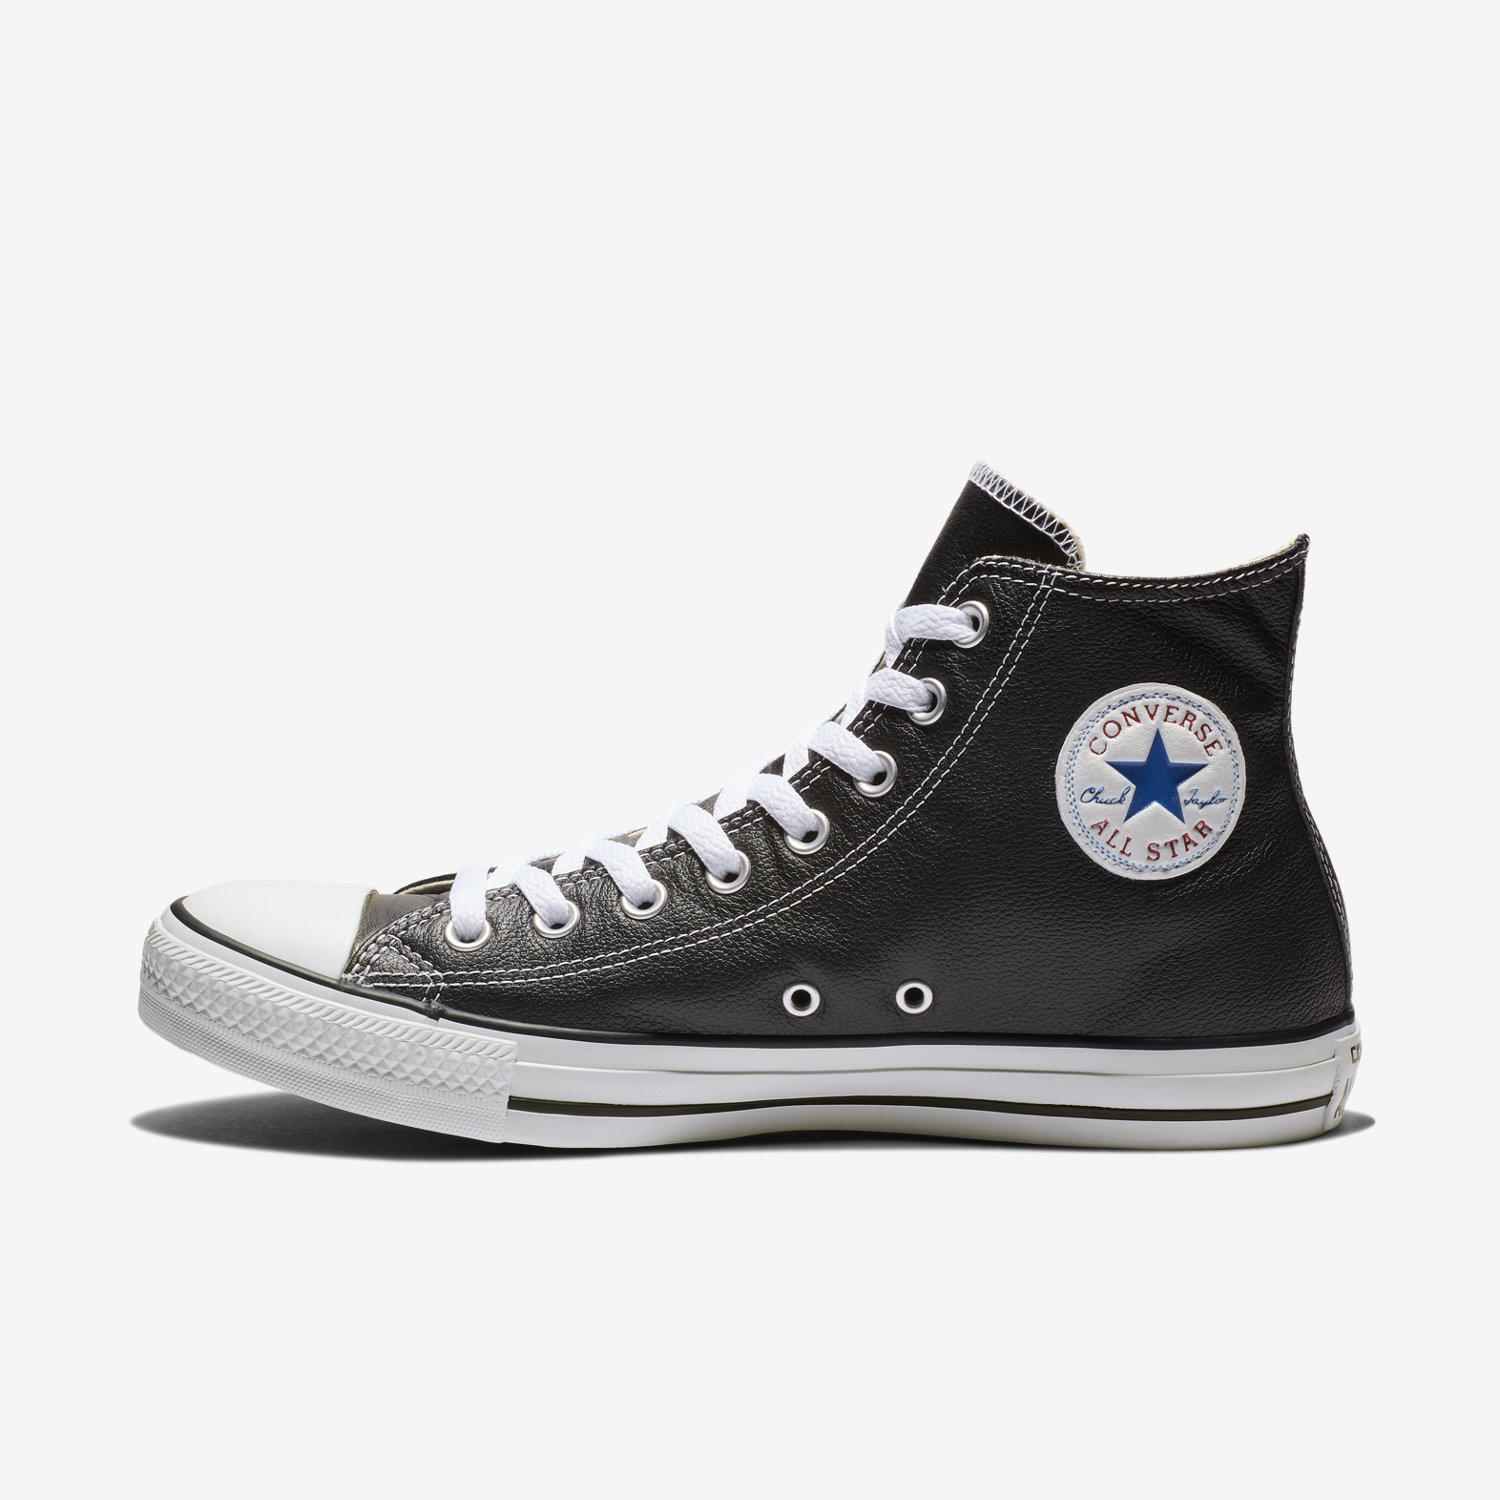 CT AS HI CANVAS METALLIC - FOOTWEAR - High-tops & sneakers Converse 5P9RCueW